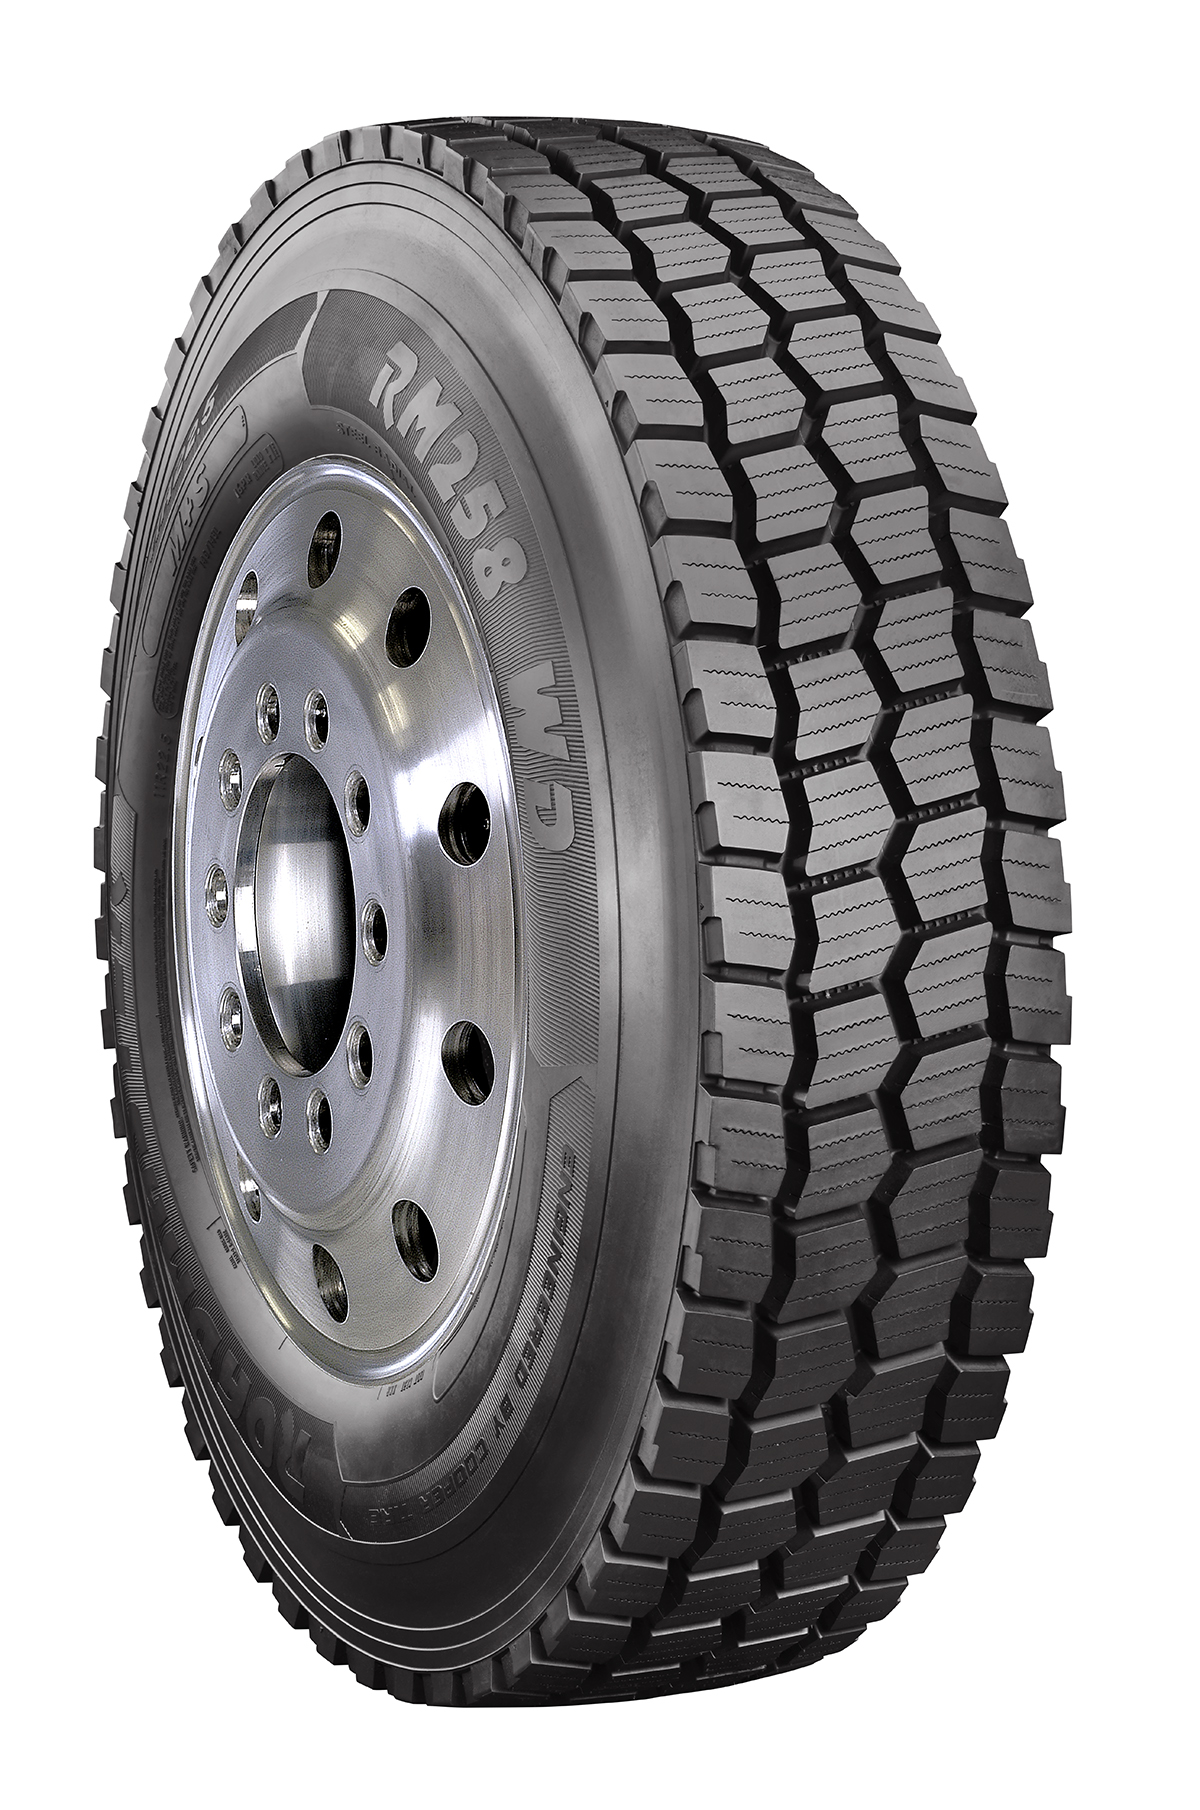 Roadmaster RM258 WD Provides Winter Traction